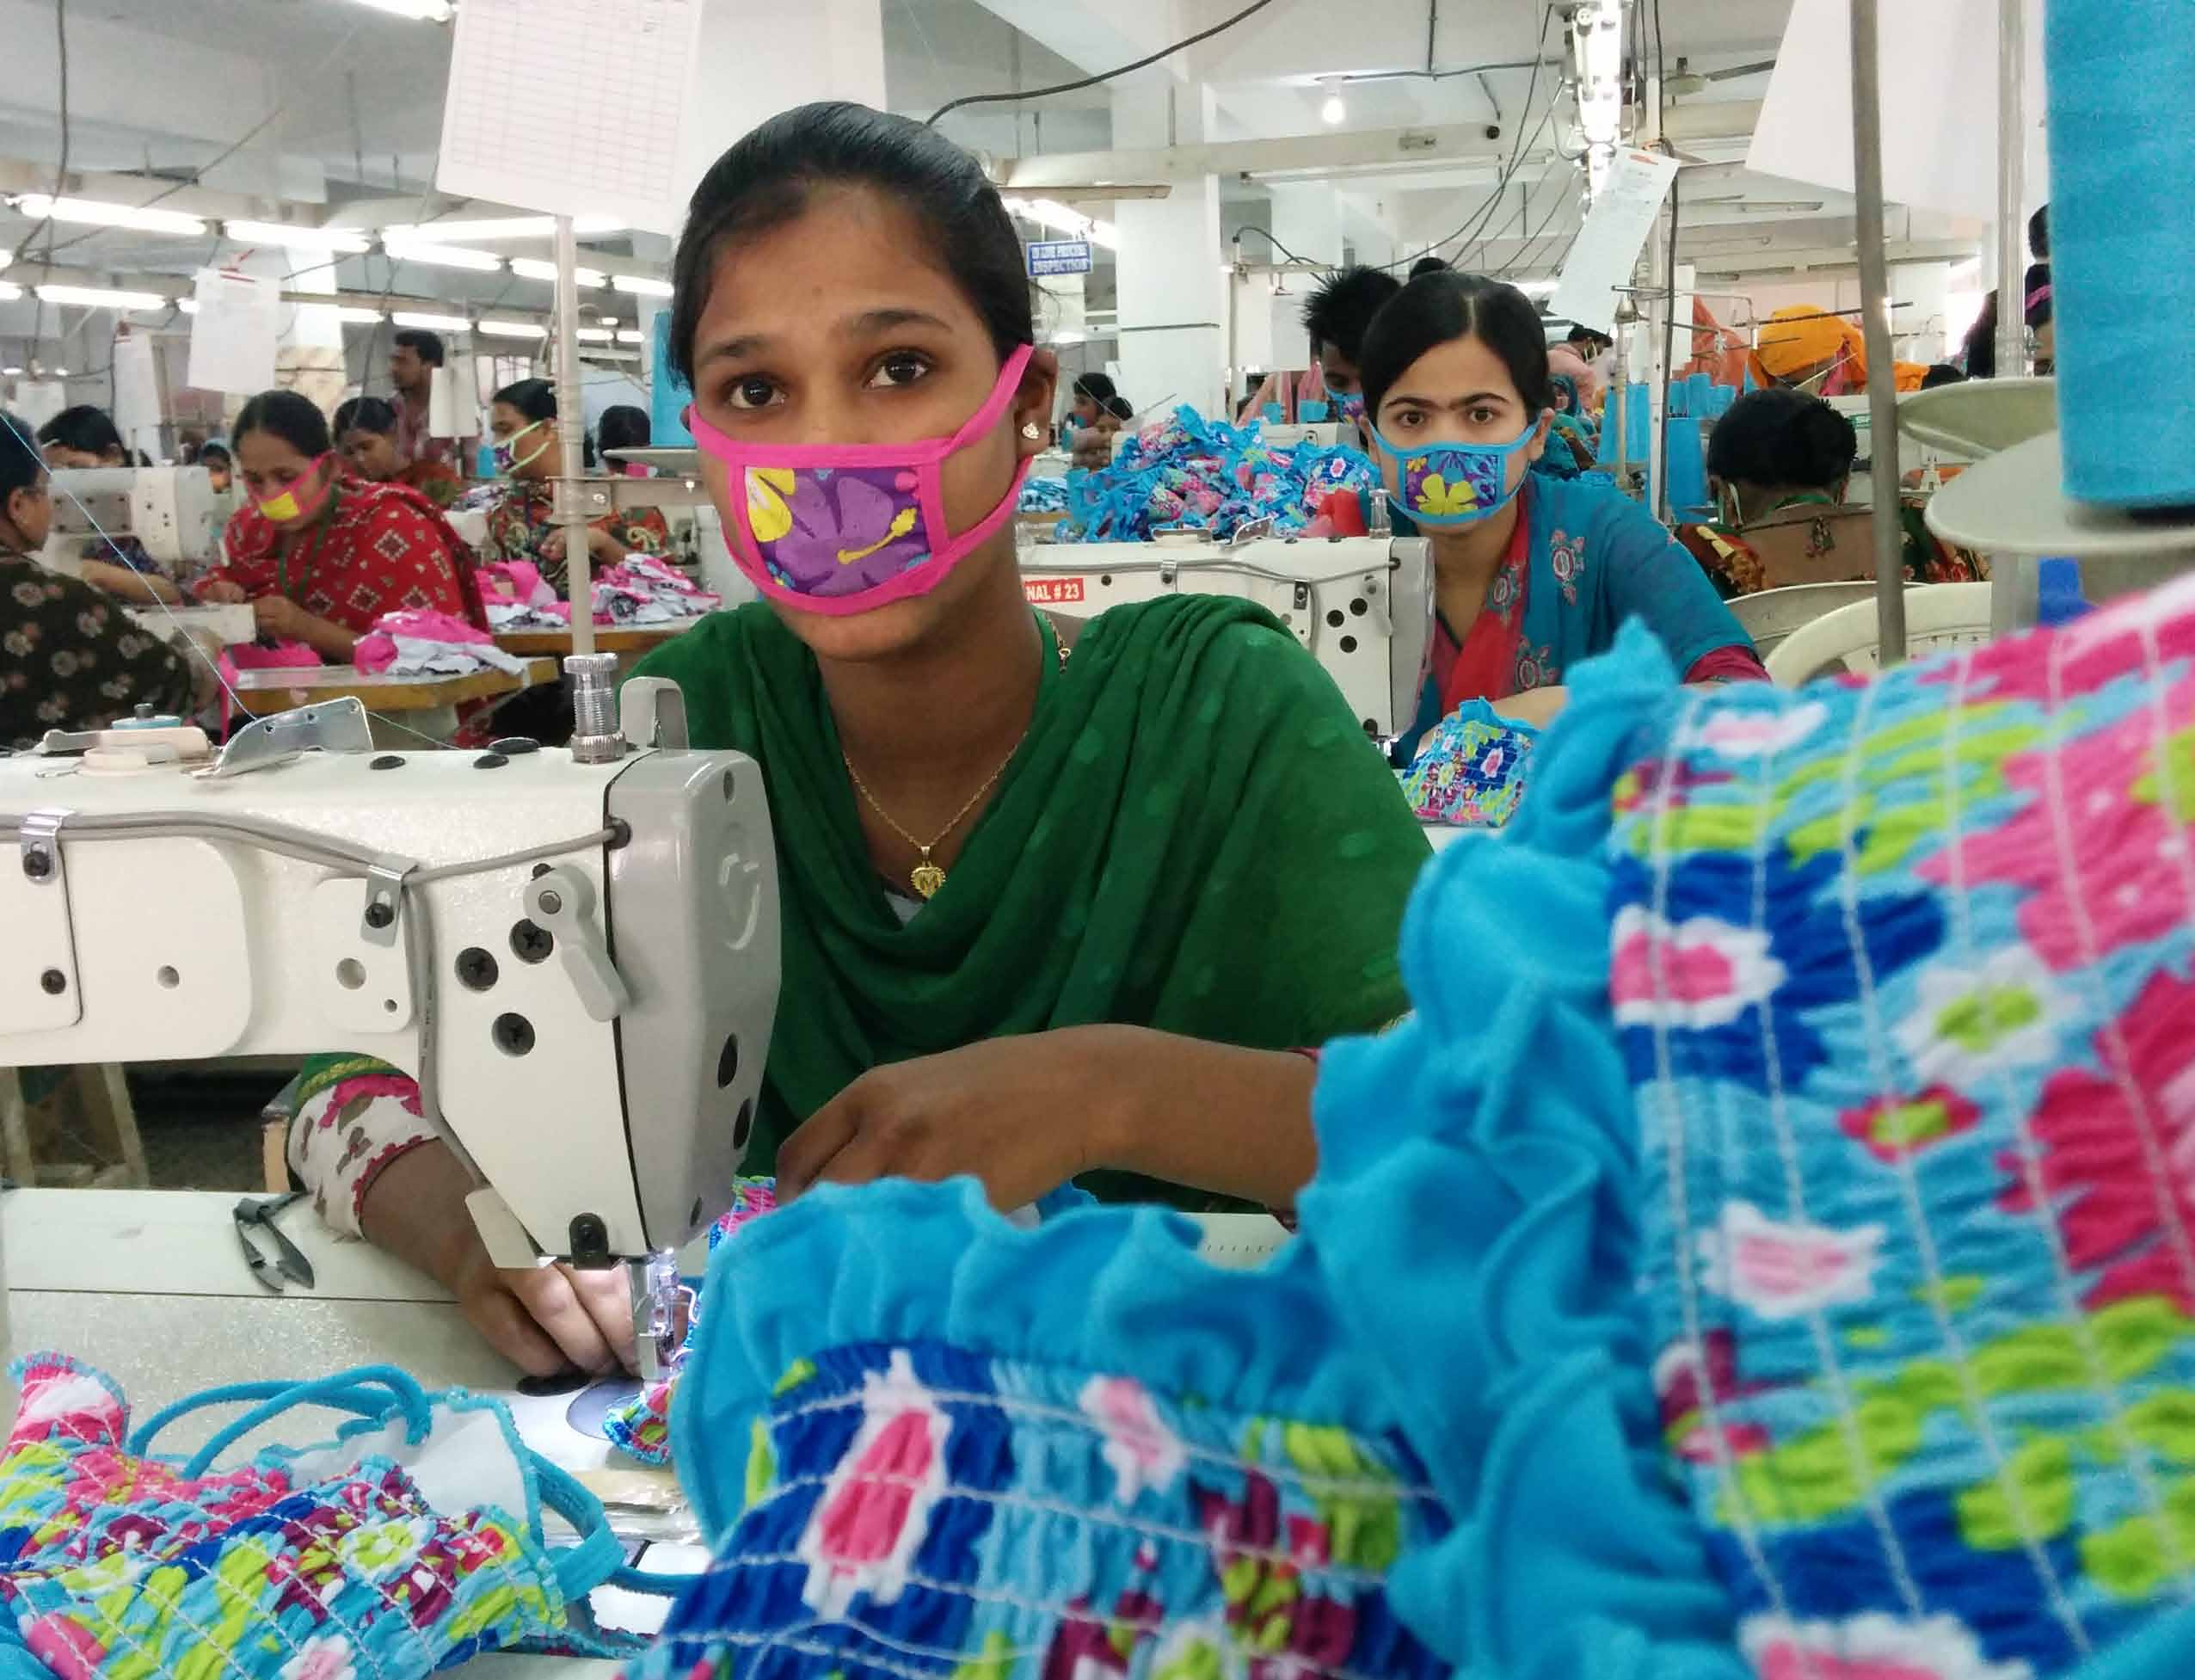 BISHAWJIT DAS The direct model leads to better working conditions by prioritizing transparency and long-term commitments in a mutually beneficial sourcing relationship between the buyer and its